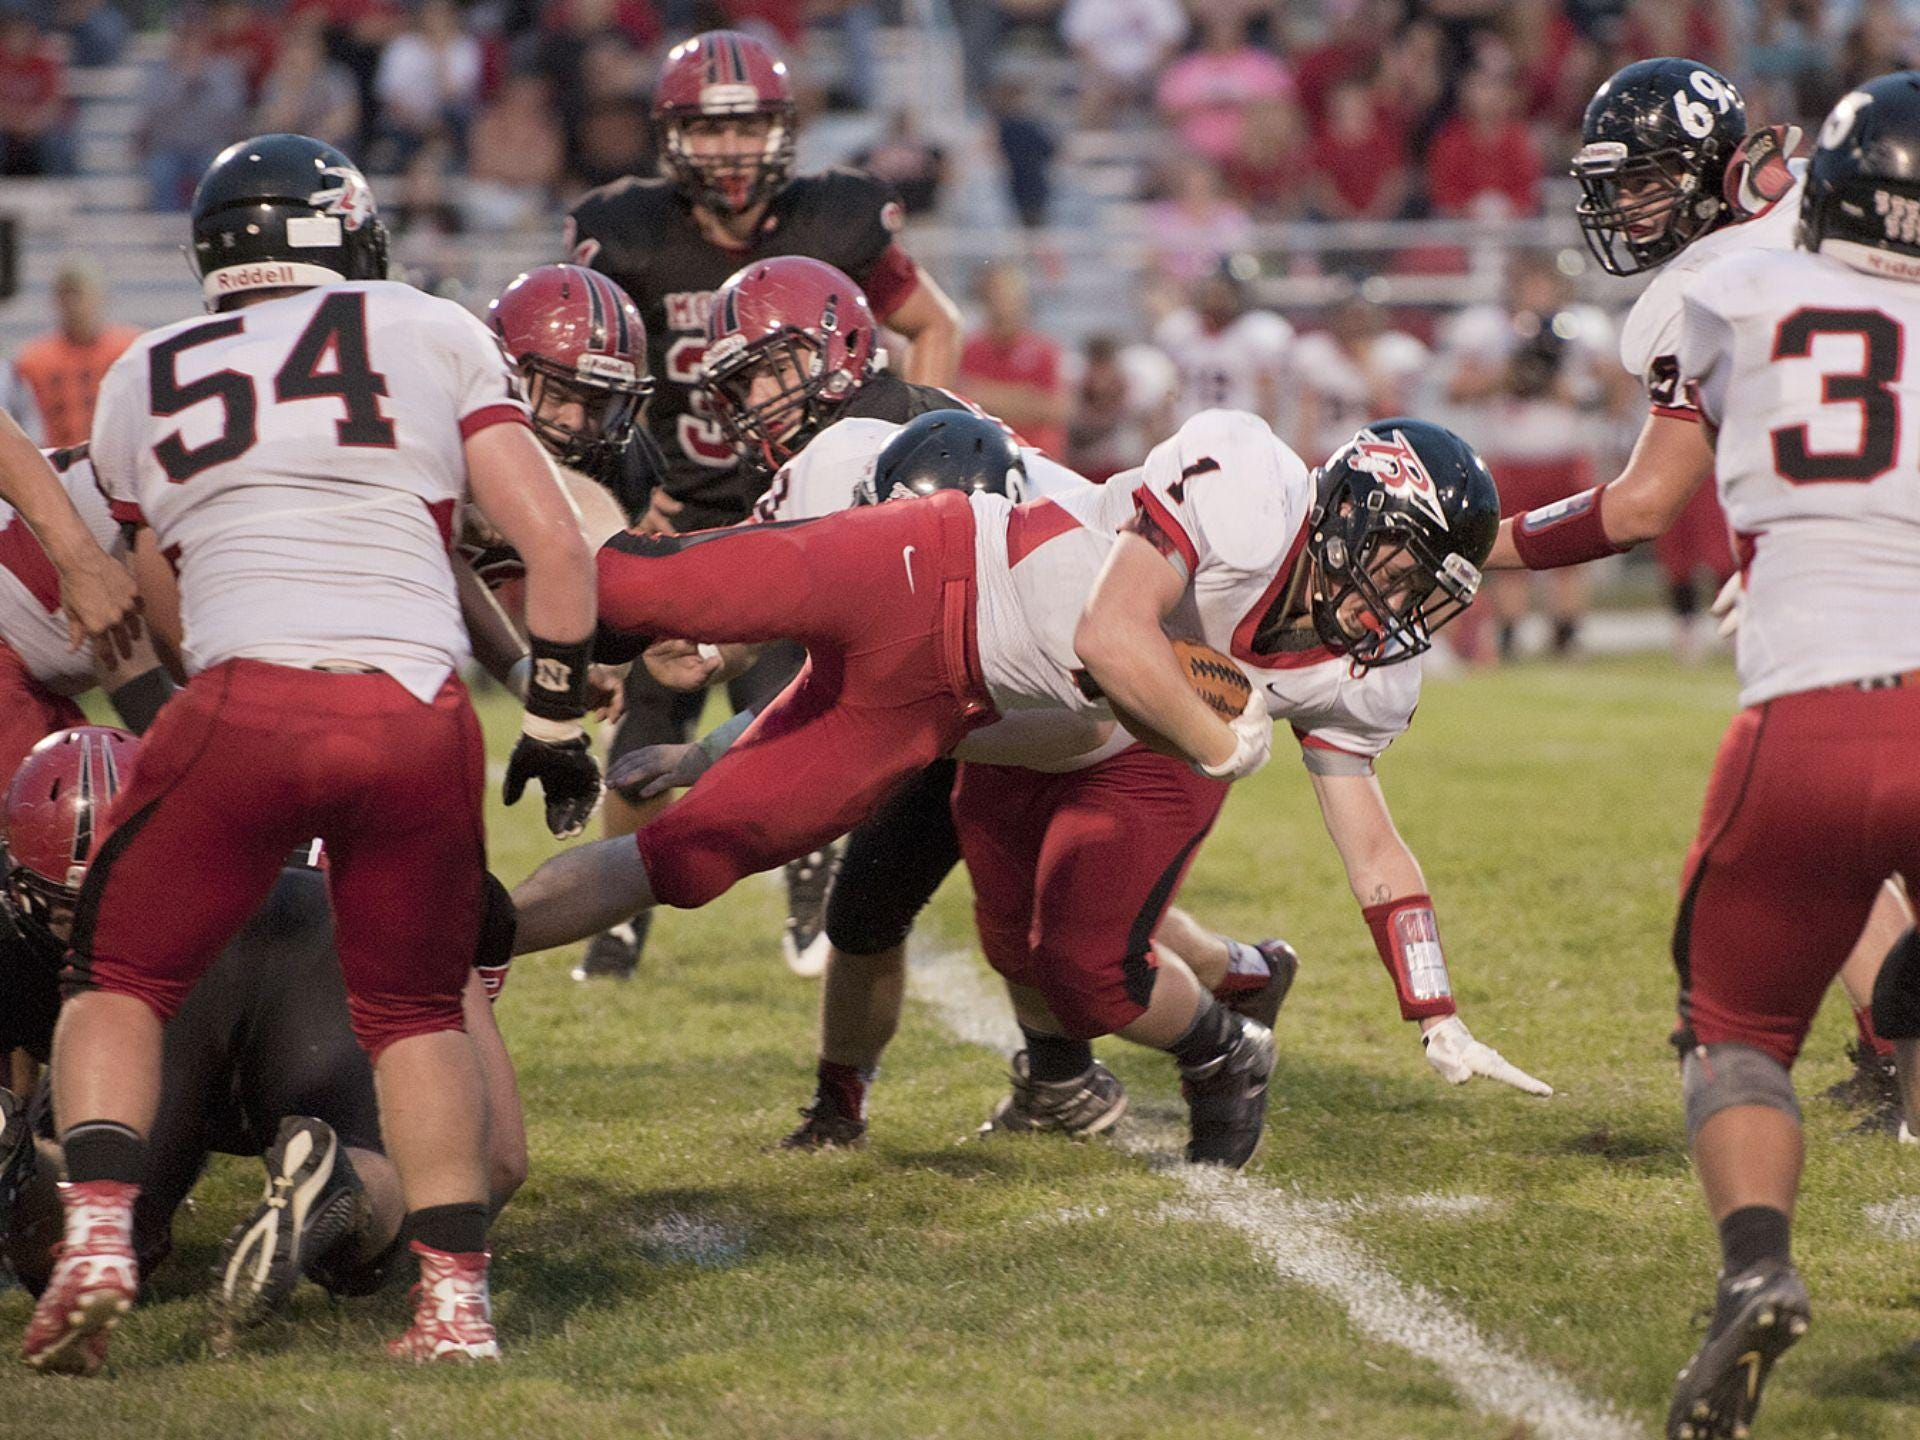 Bucyrus running back Bailey Johnson dives for a gain last friday against Mohawk.